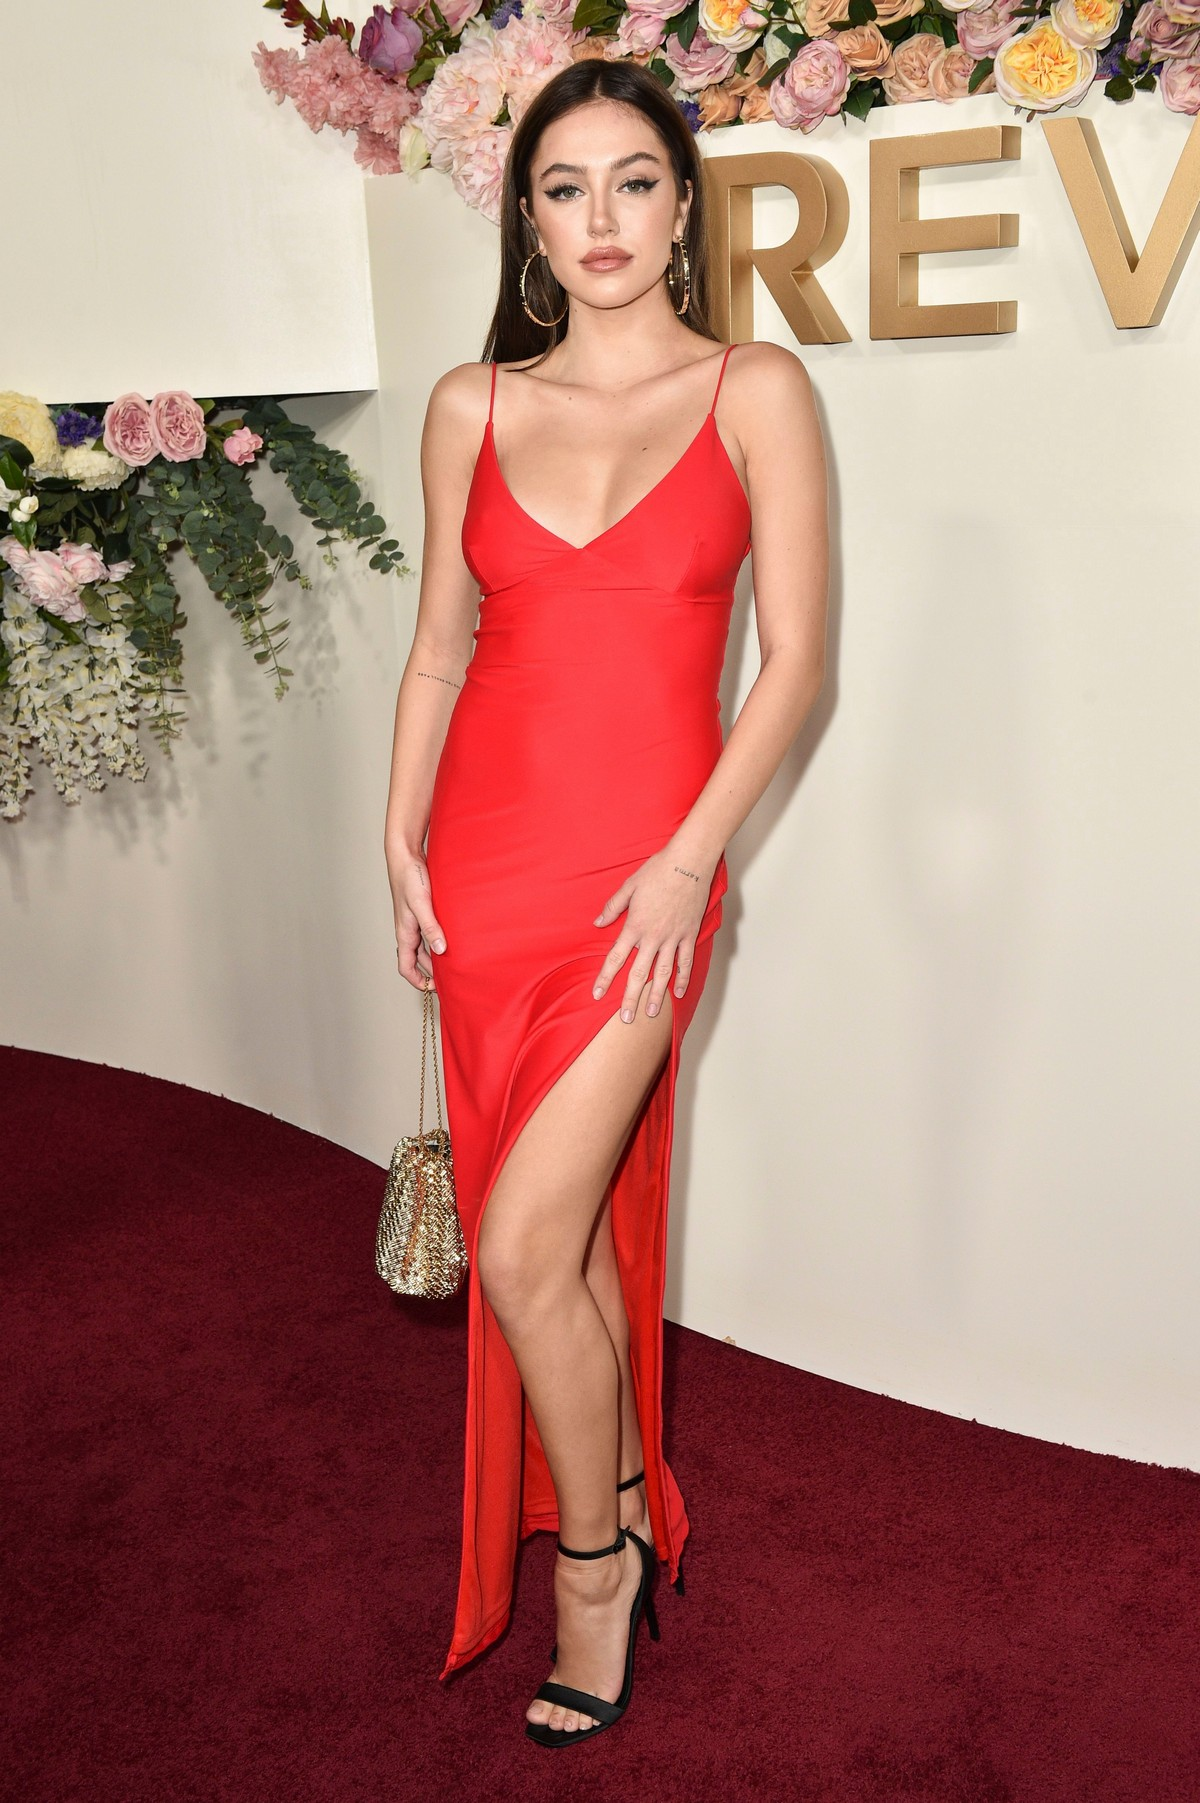 Delilah Belle Hamlin seen in Red Stylish Dress at 3rd Annual #REVOLVE Awards 2019 in Los Angeles 2019/11/15 15